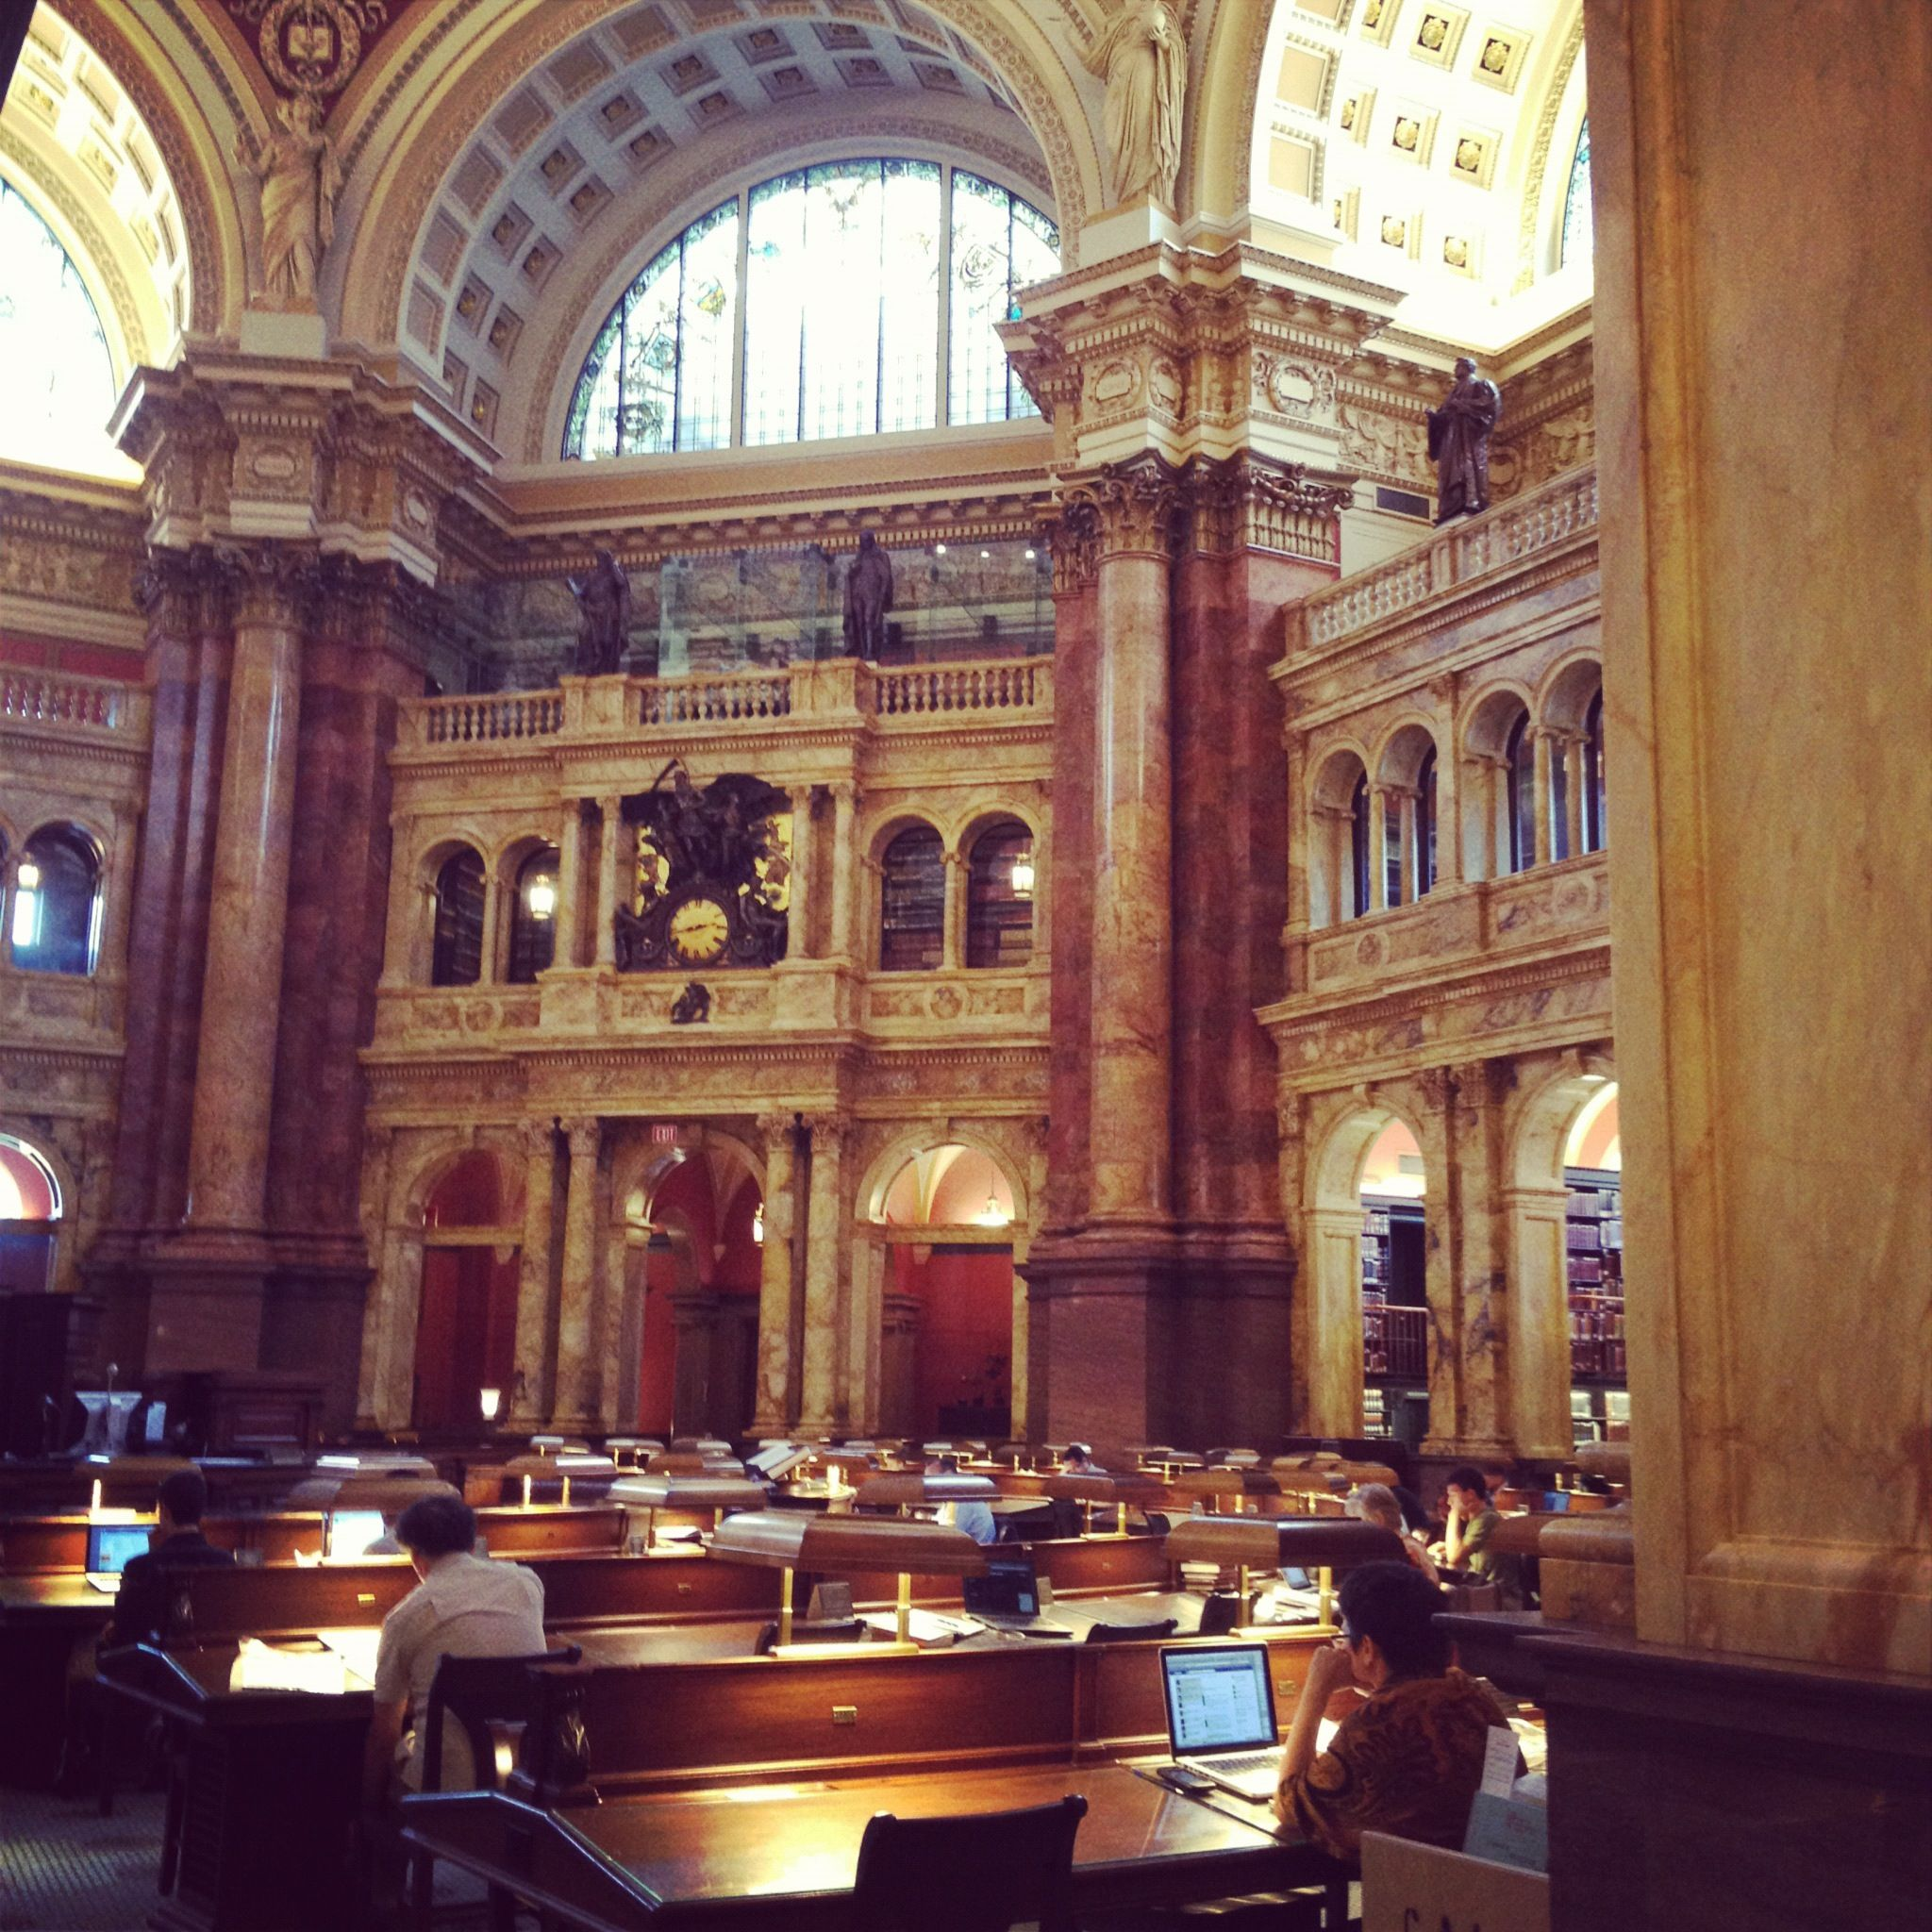 the library of congress main reading room.  Another favorite library.